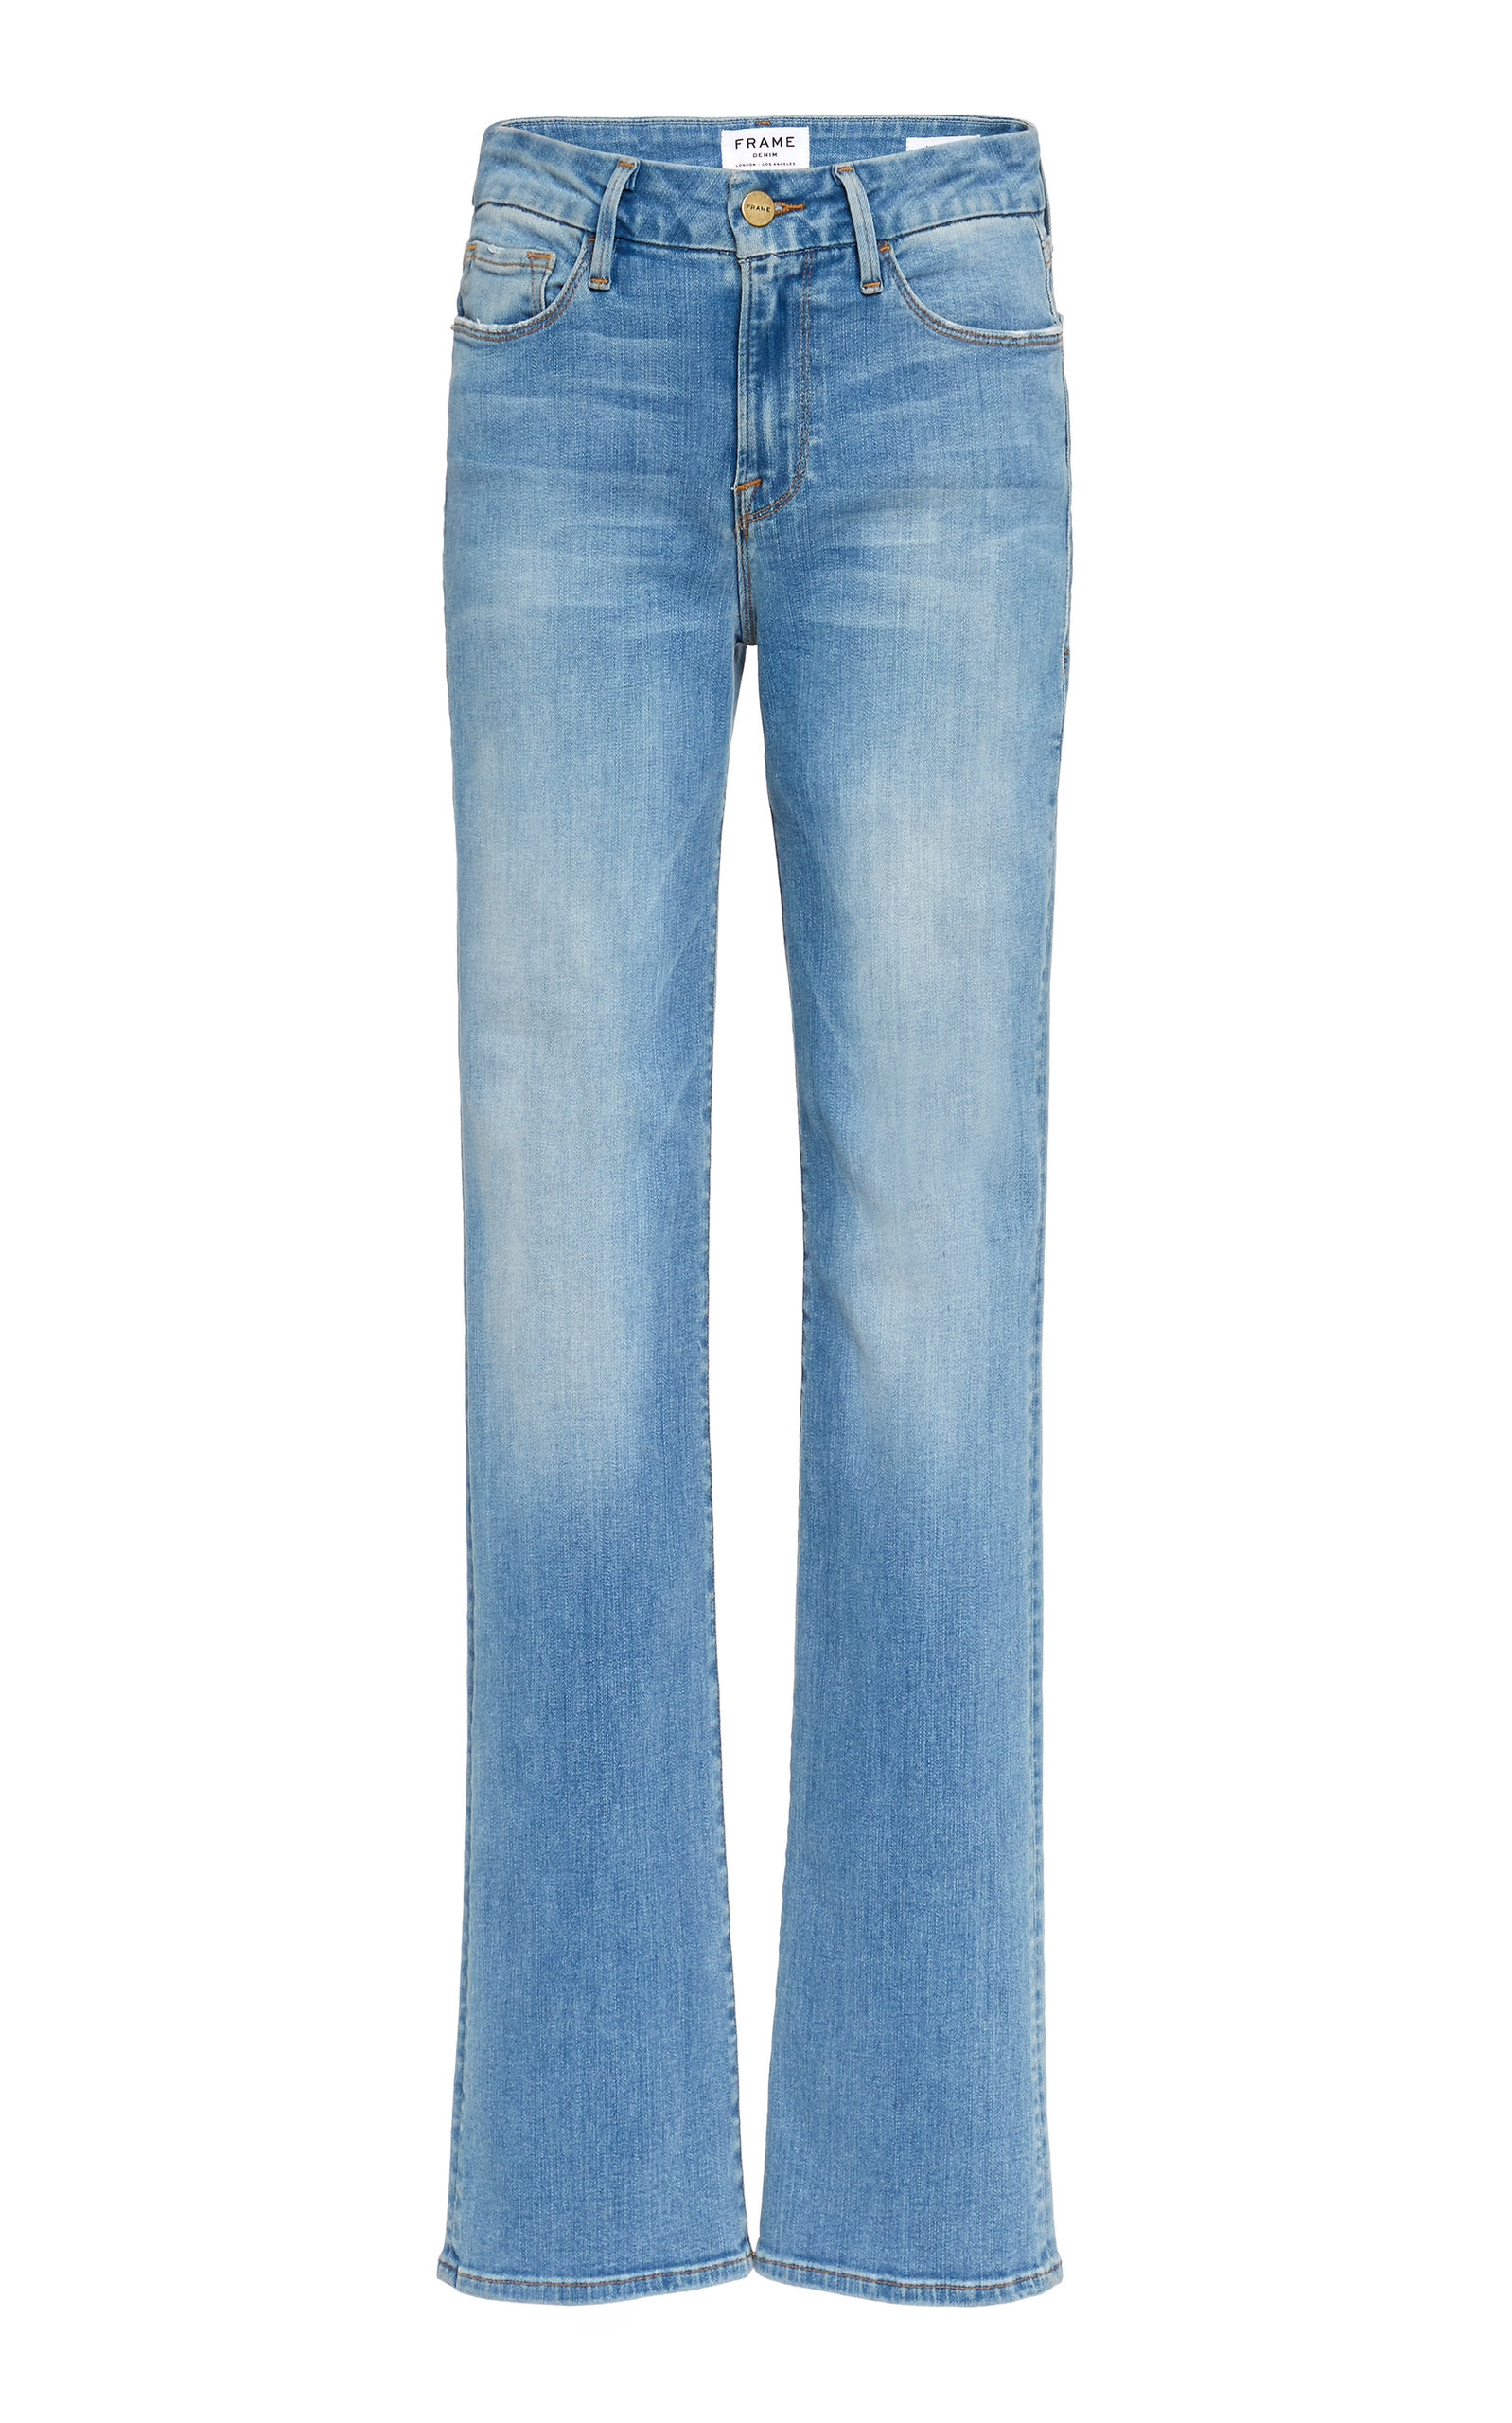 Frame Jeans LE MINI BOOT MID-RISE BOOTCUT JEANS